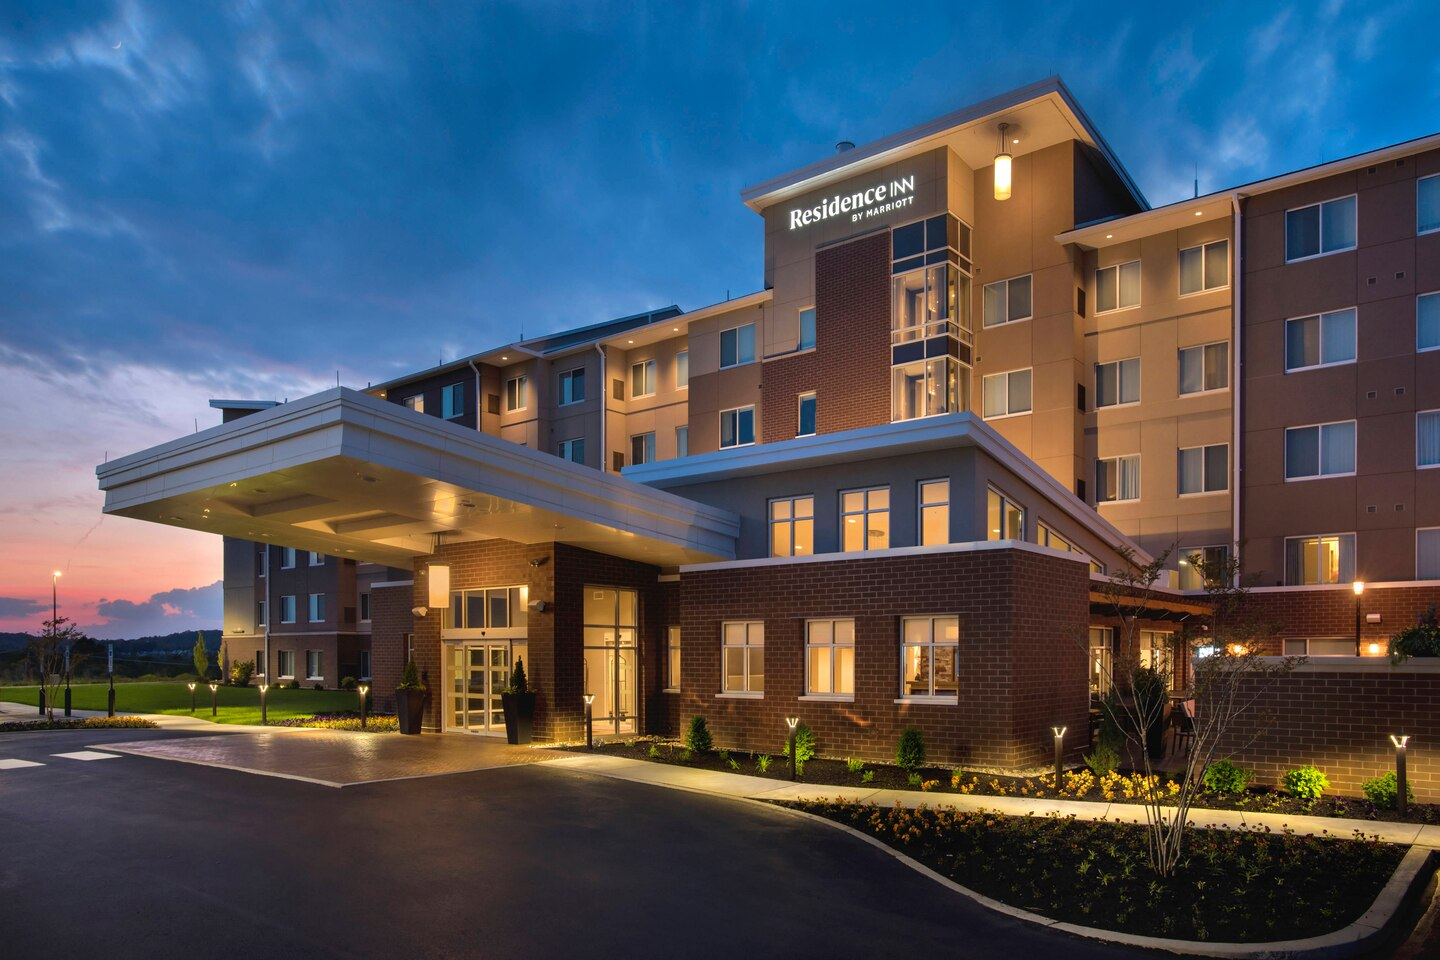 RESIDENCE INN at the CROSSINGS AT CONESTOGA CREEK, Lancaster, PA